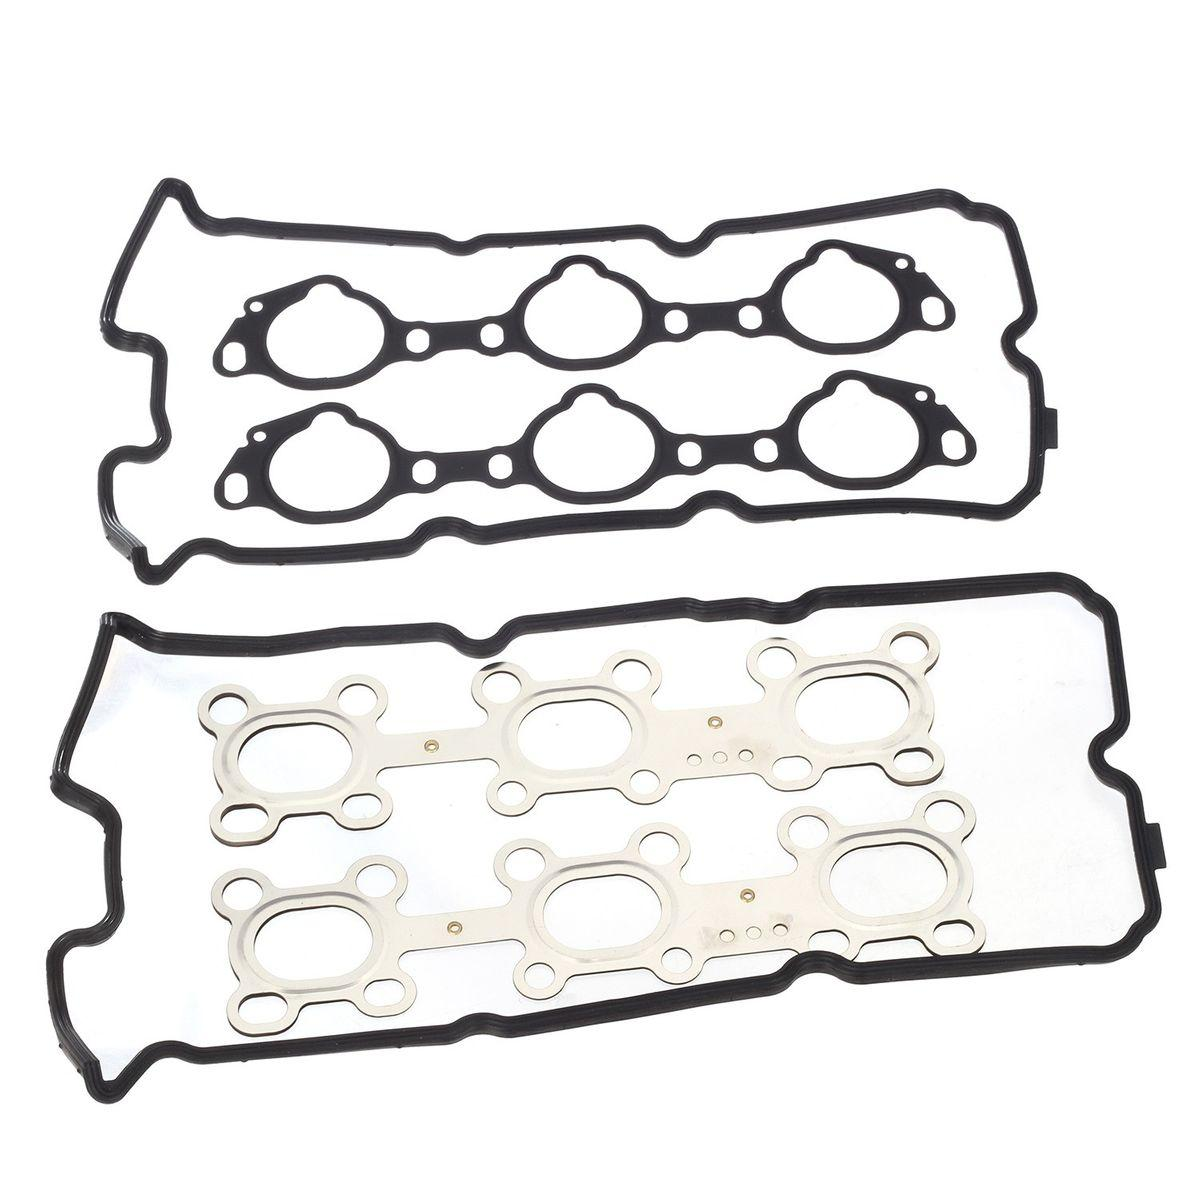 For NISSAN FRONTIER XTERRA 2005-2013 4.0L MLS Head Gasket